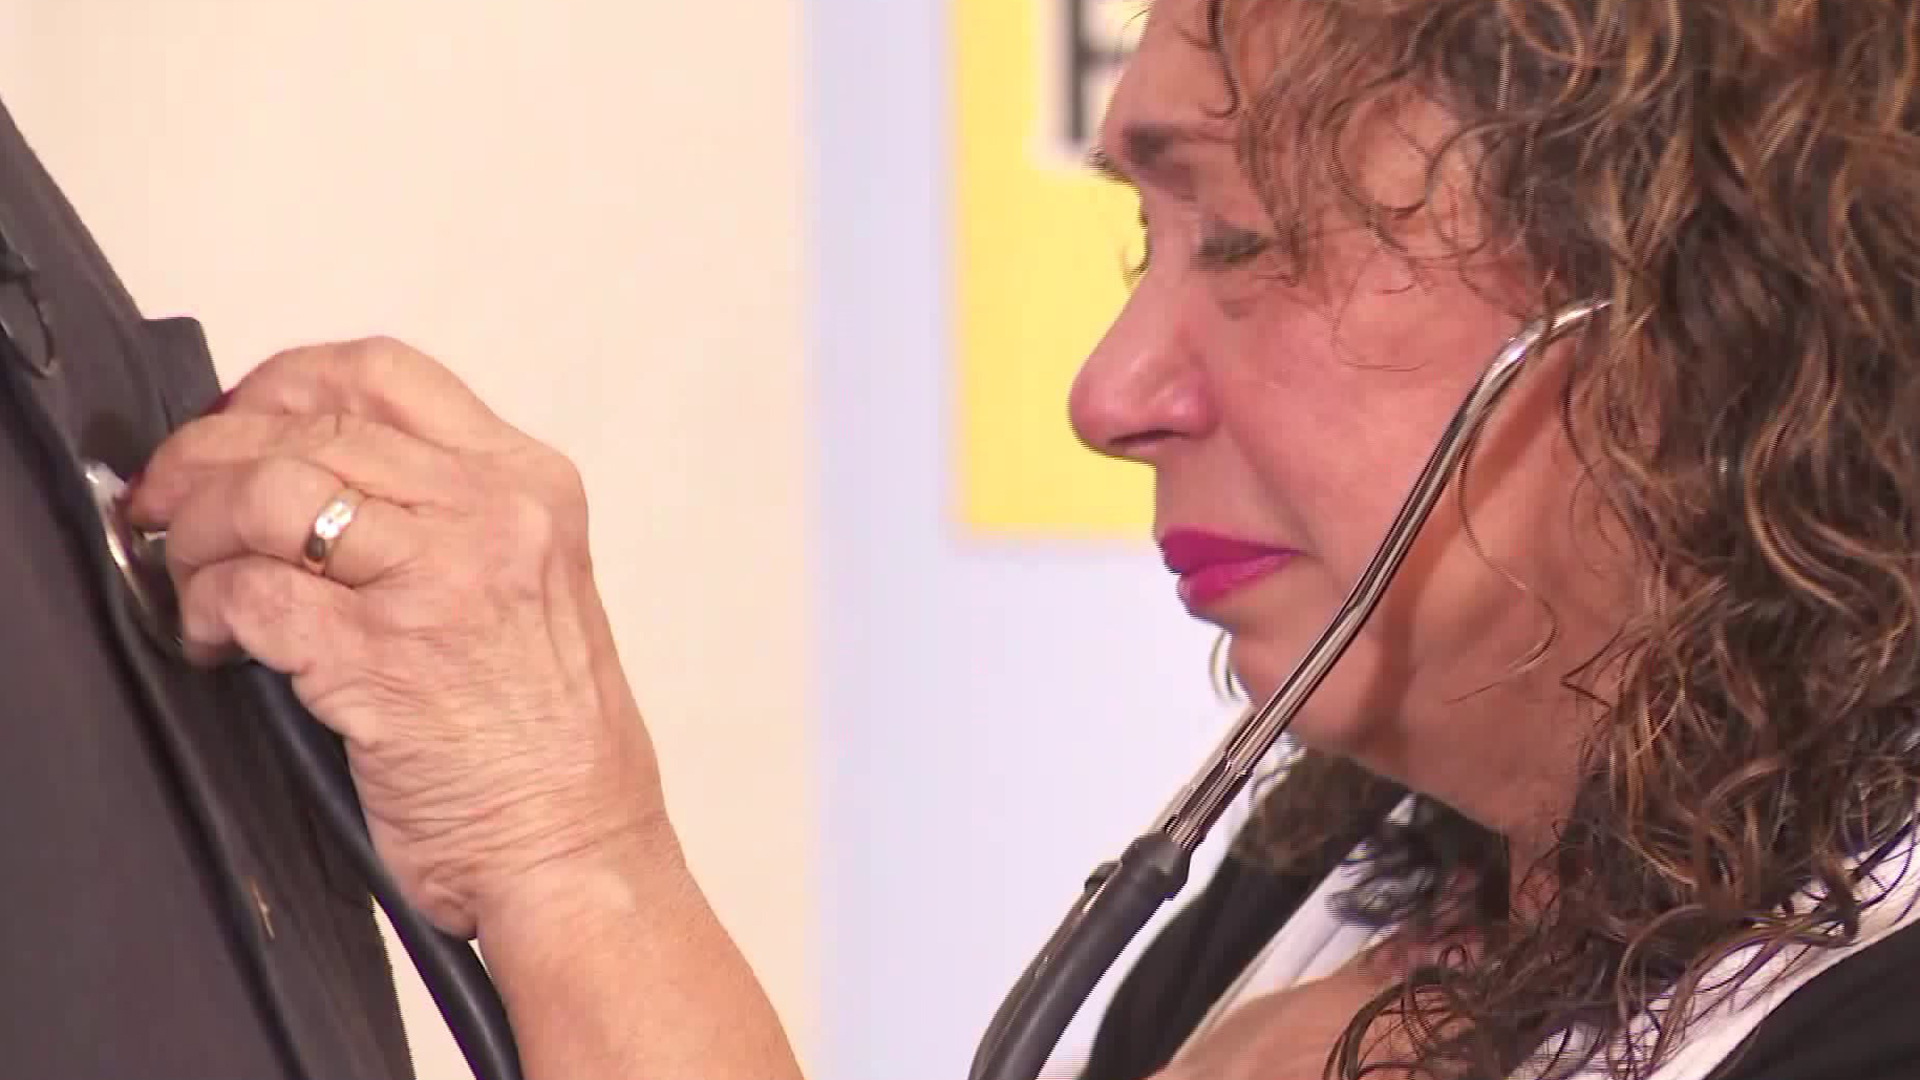 The mother of organ donor Herbert Alberts, Genny, listens to the sound of heartbeats coming from Jeff Eble in Pasadena on Dec. 30, 2018. Eble received her son's heart as a life-saving transplant.(Credit: KTLA)